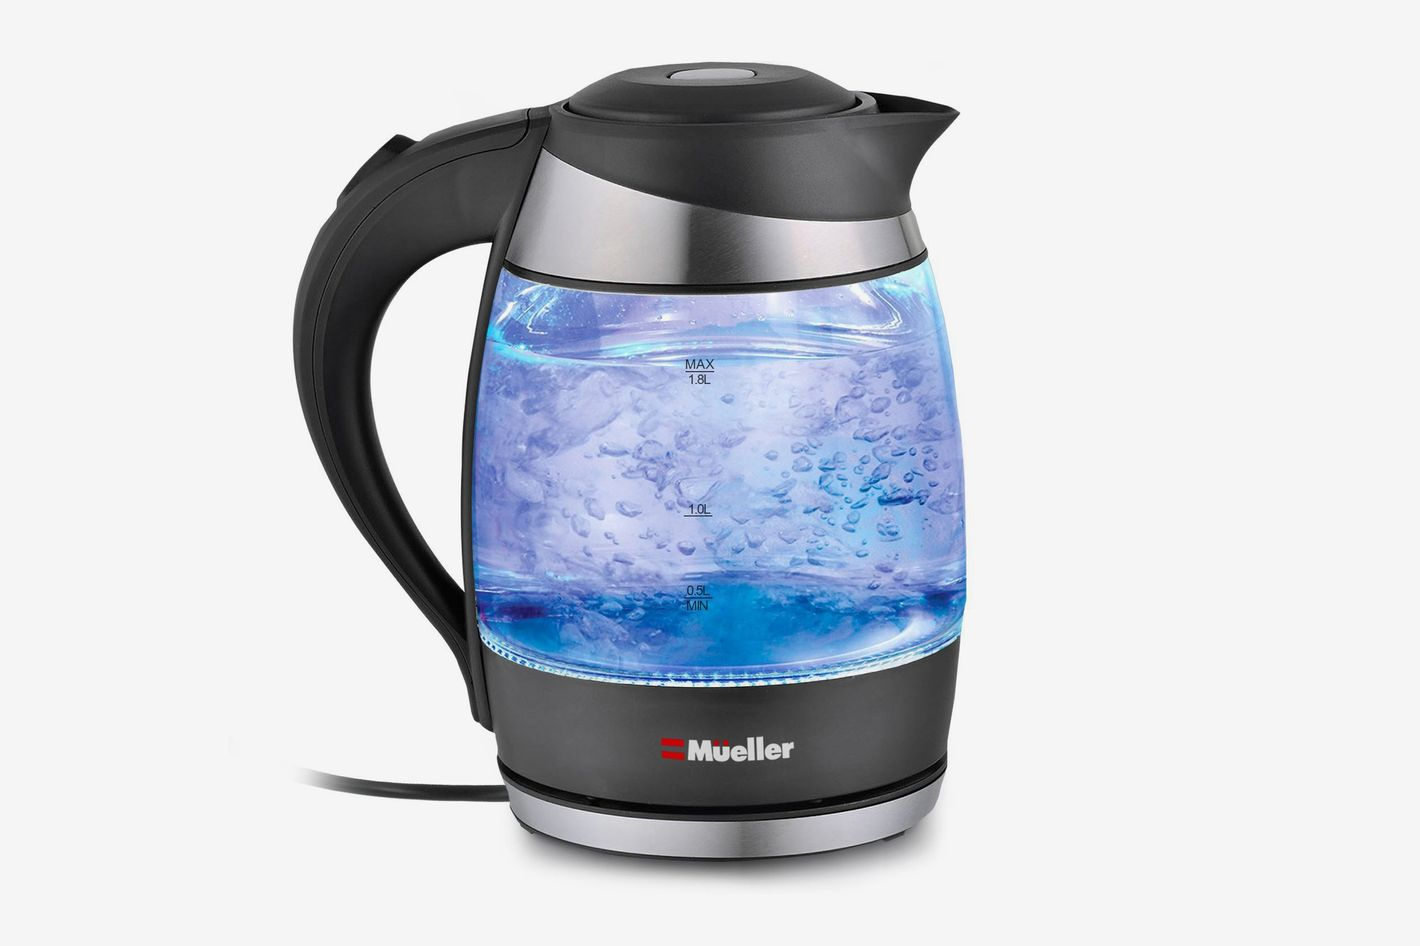 Mueller Austria Glelectric Kettle Water Heater With S Dboil Tech At Amazon